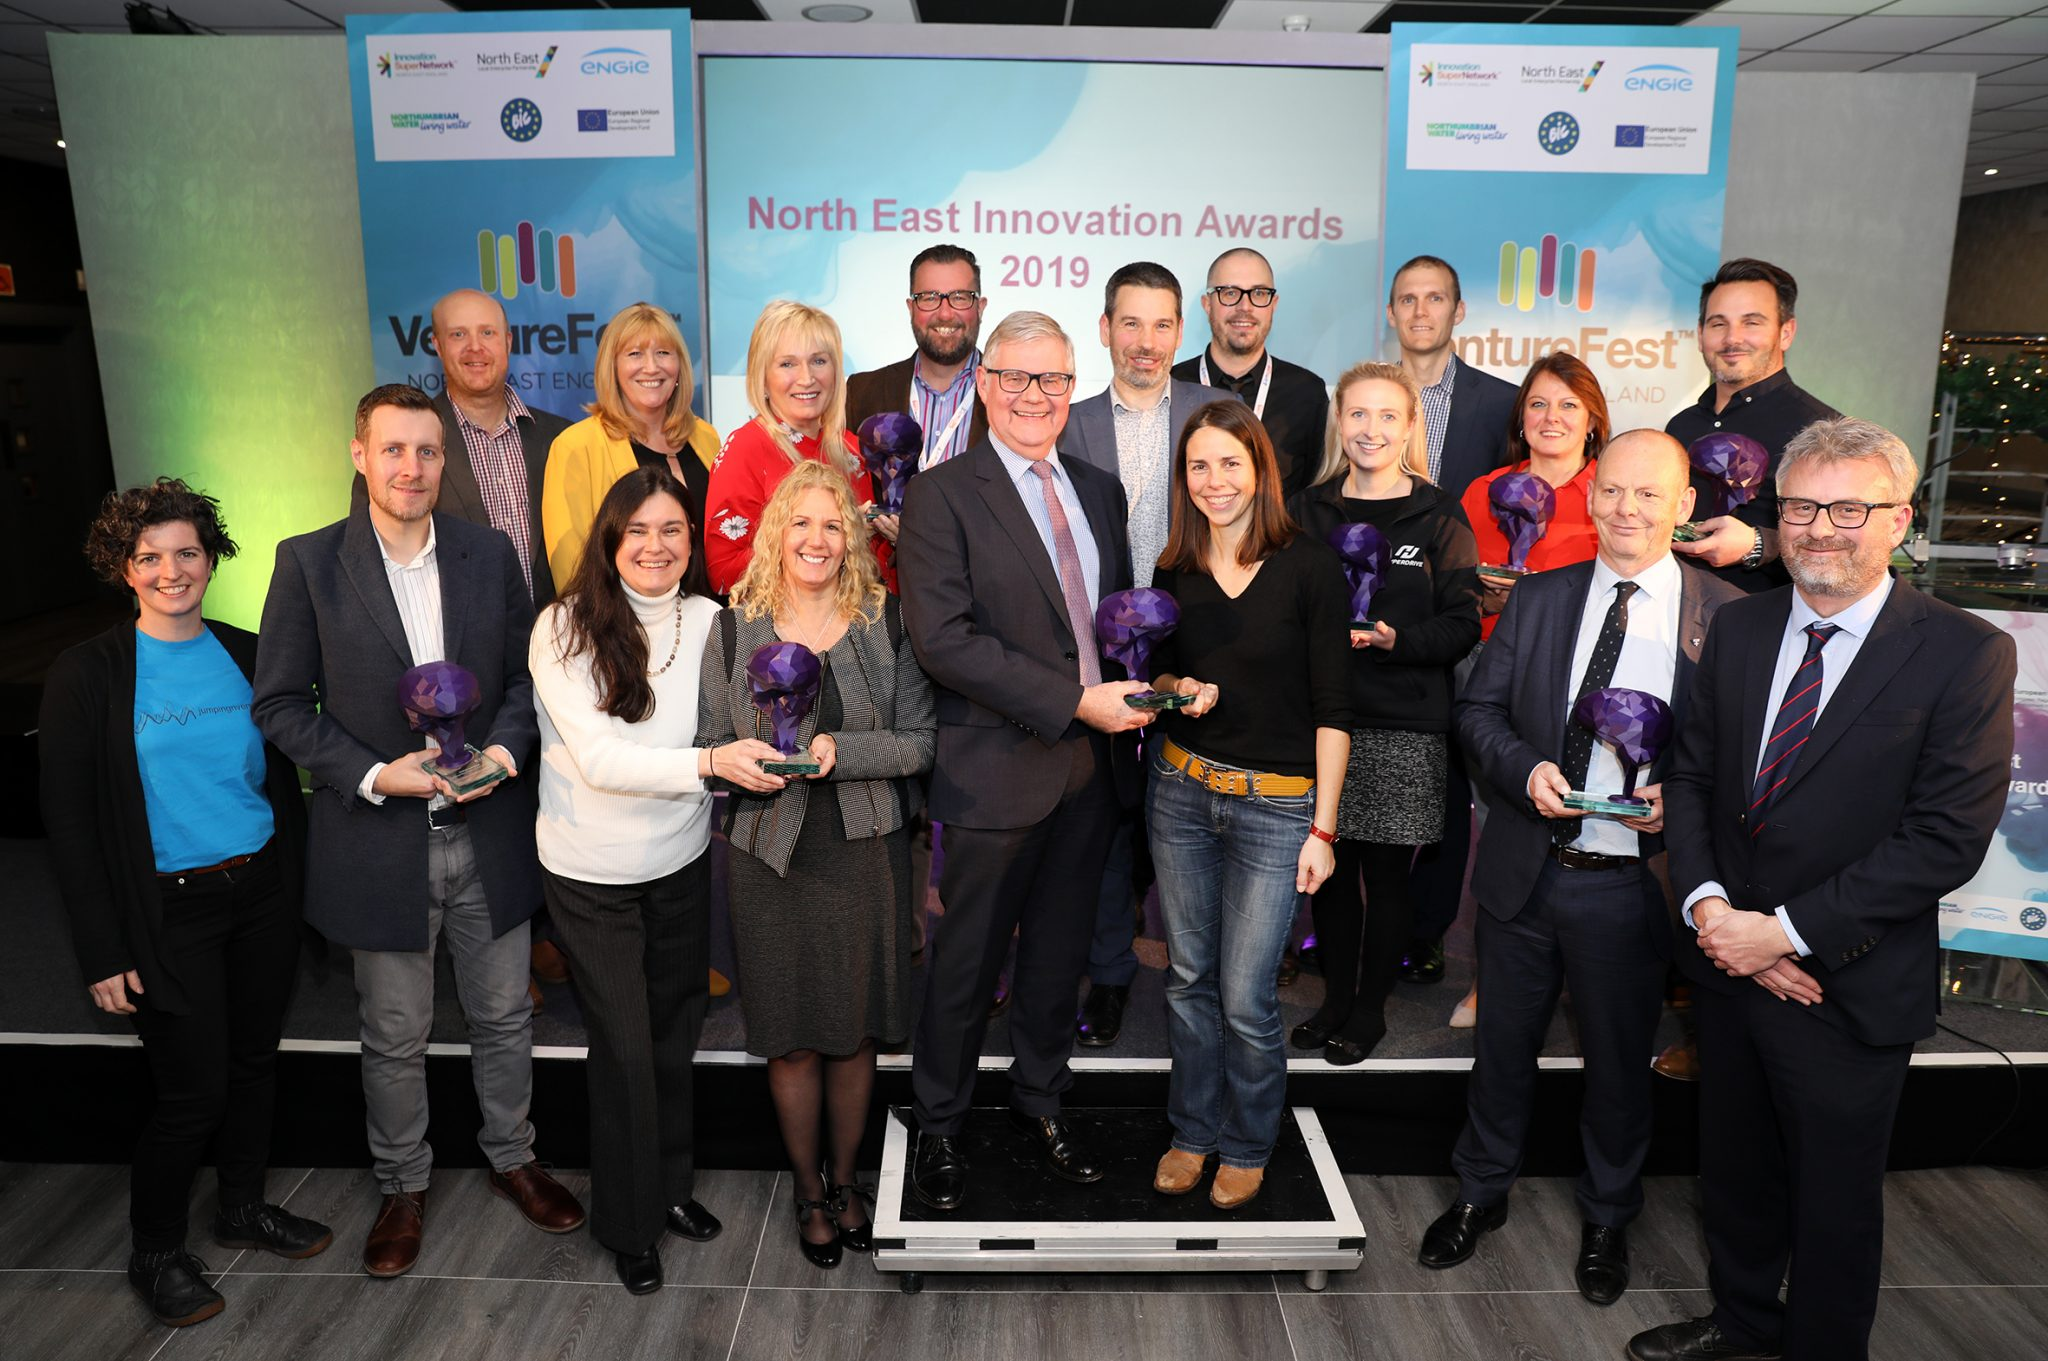 North East Innovation Award winners with Simon Green, CEO at Innovation Supernetwork and Kresse Wesling, MBE